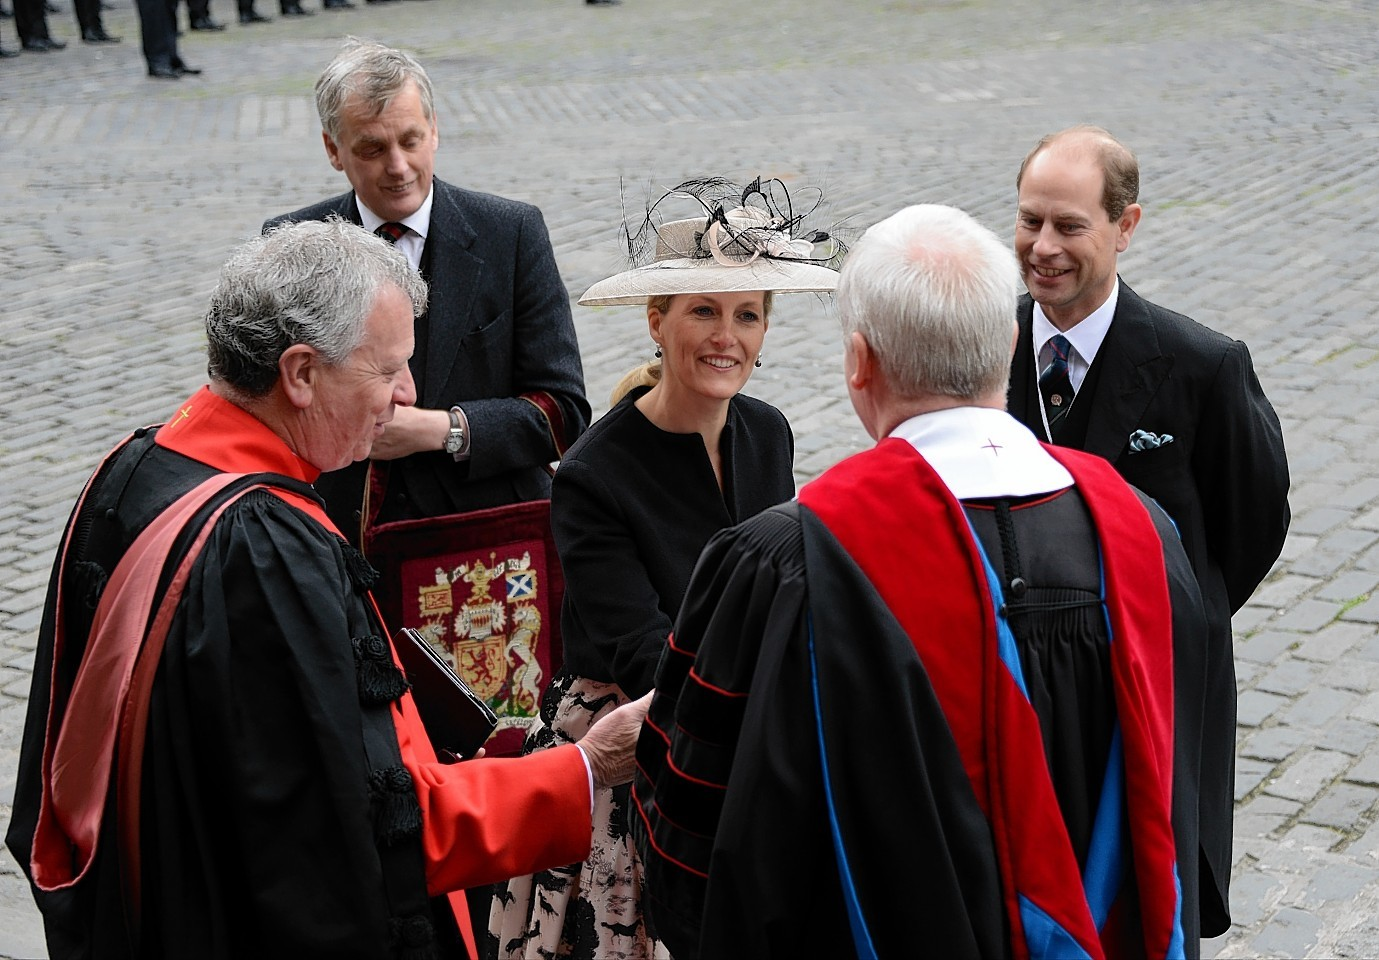 The Earl and Countess of Wessex have already visited Edinburgh earlier this week